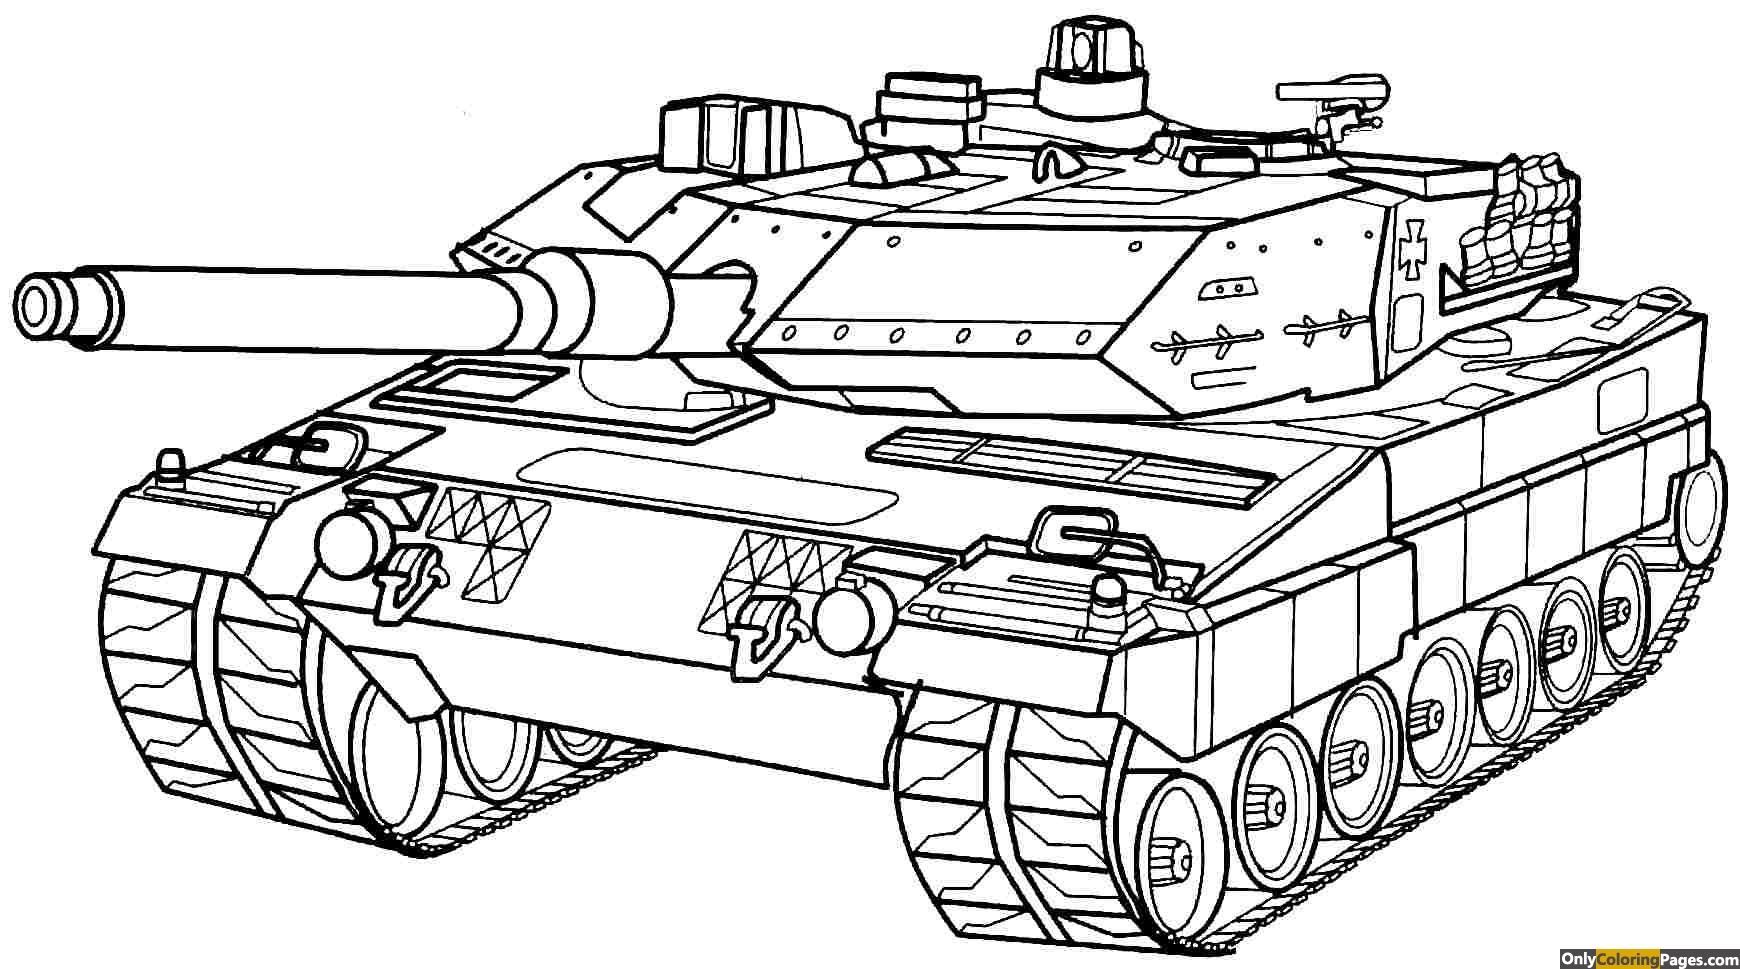 tank coloring pages - army tank coloring pages free printable online army tank